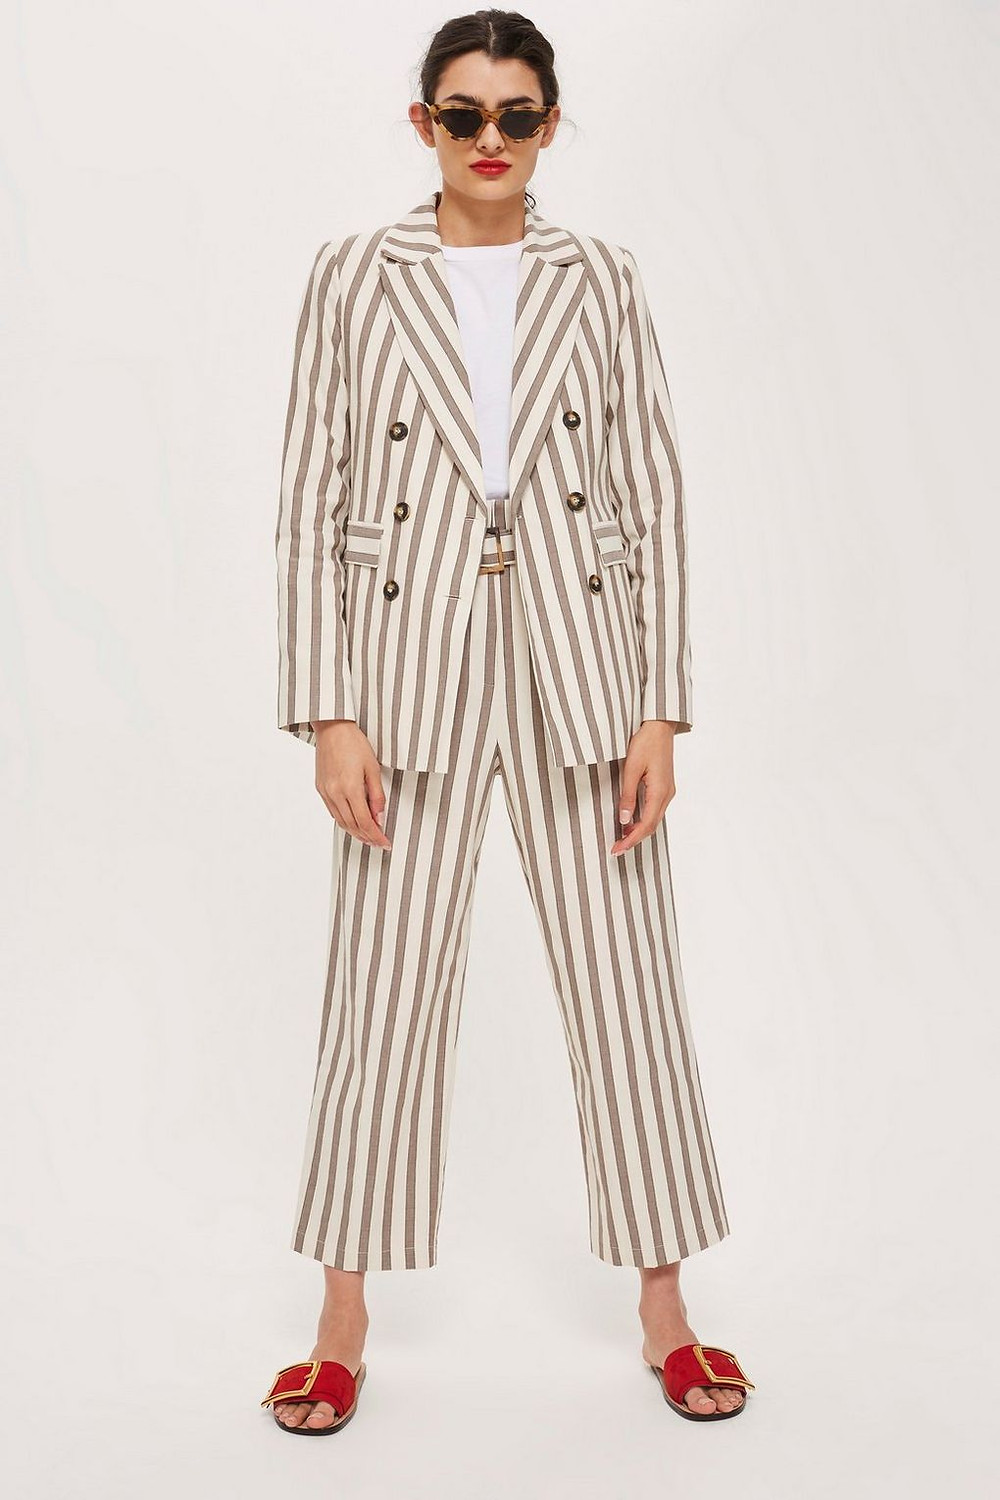 Topshop Striped Double Breasted Blazer $55